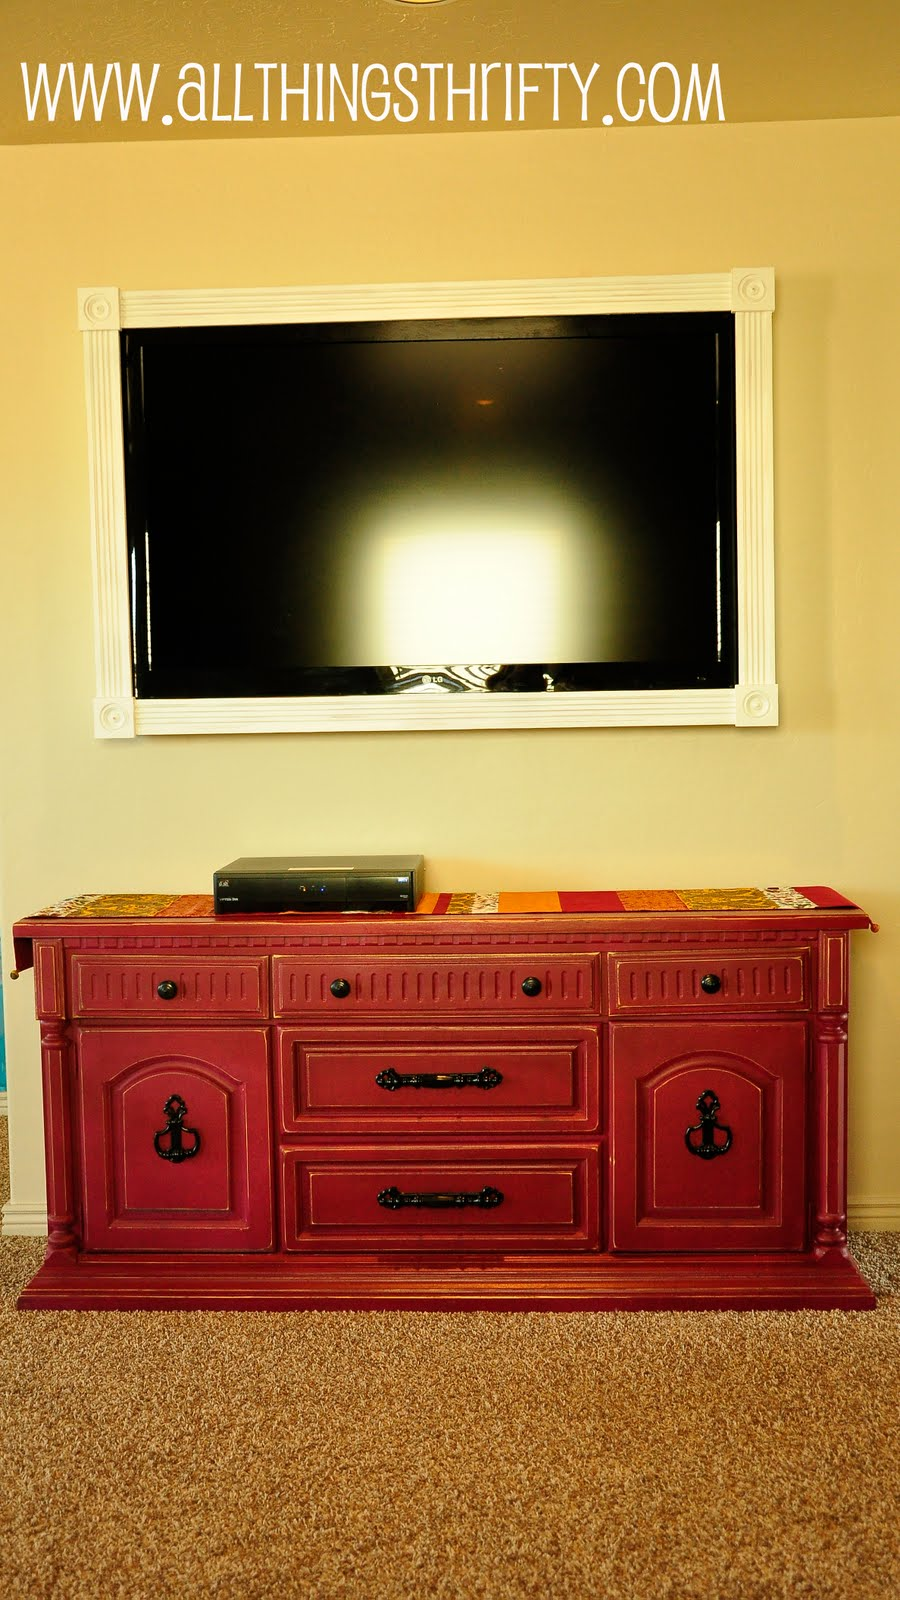 Cover up ugly LCD TV brackets   All Things Thrifty